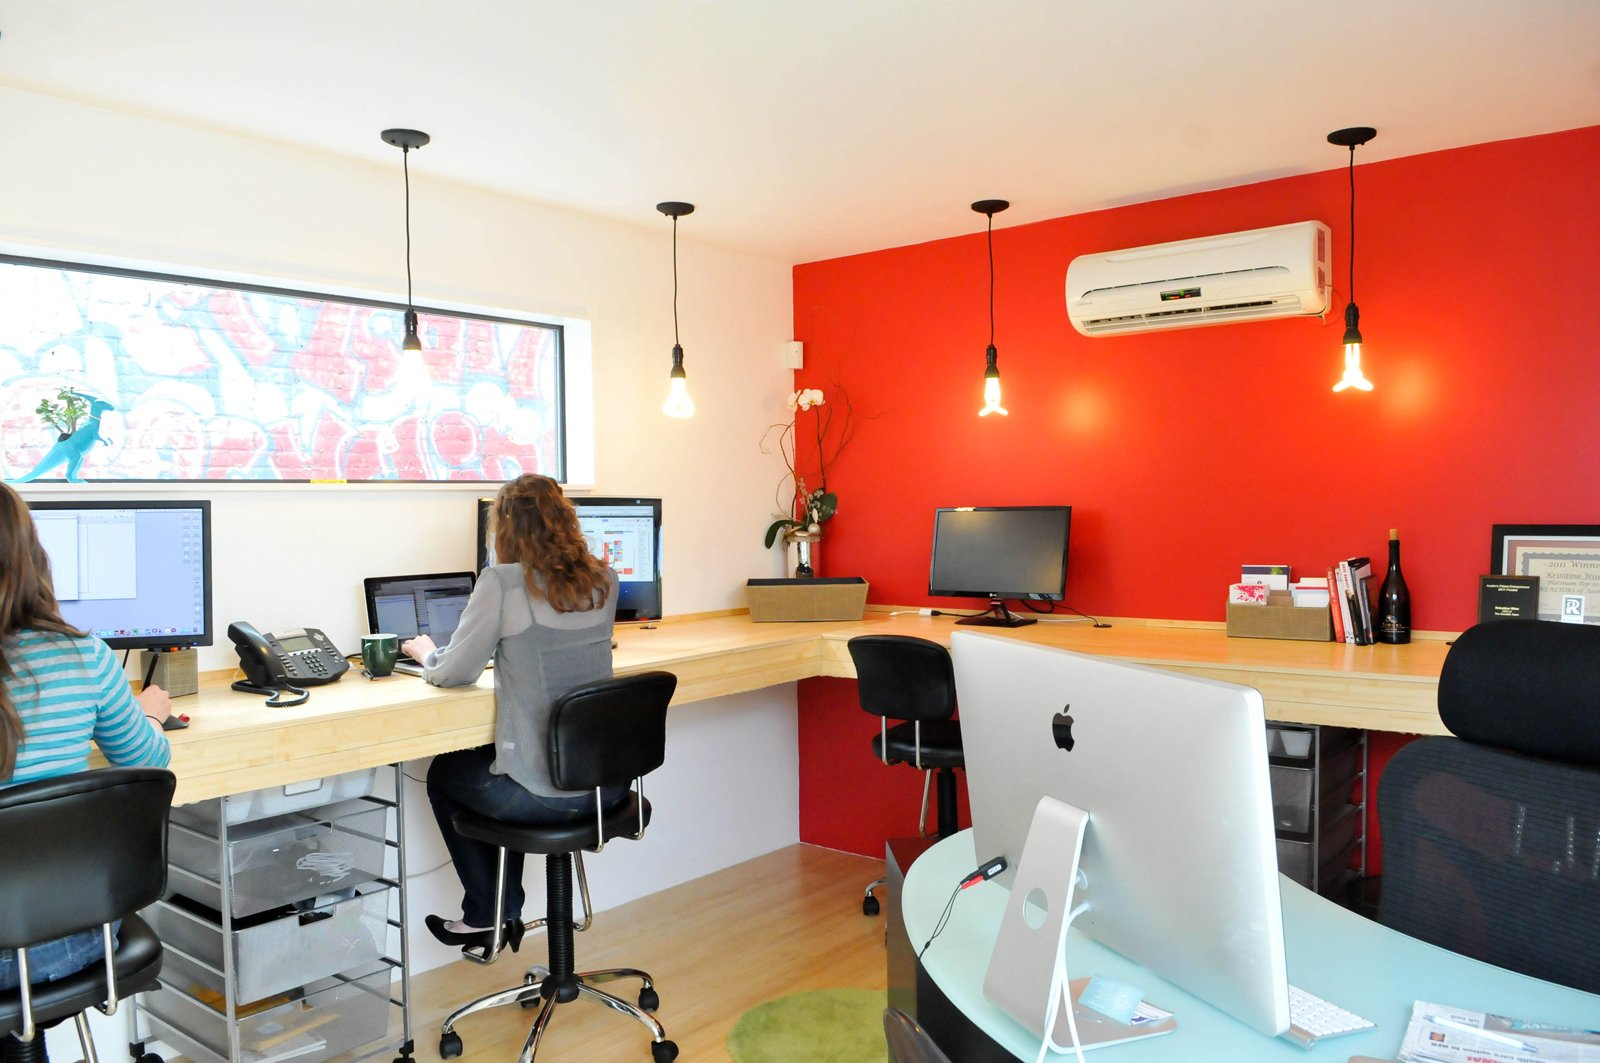 For the realty group interior space, eight people comfortably work in the 12-foot-by-14-foot room. There's a mini slit A/C and heating system, painted sheetrock walls and bamboo floors and desk. Tagged: Office and Desk.  Photo 11 of 13 in On Your Mark, Get Sett